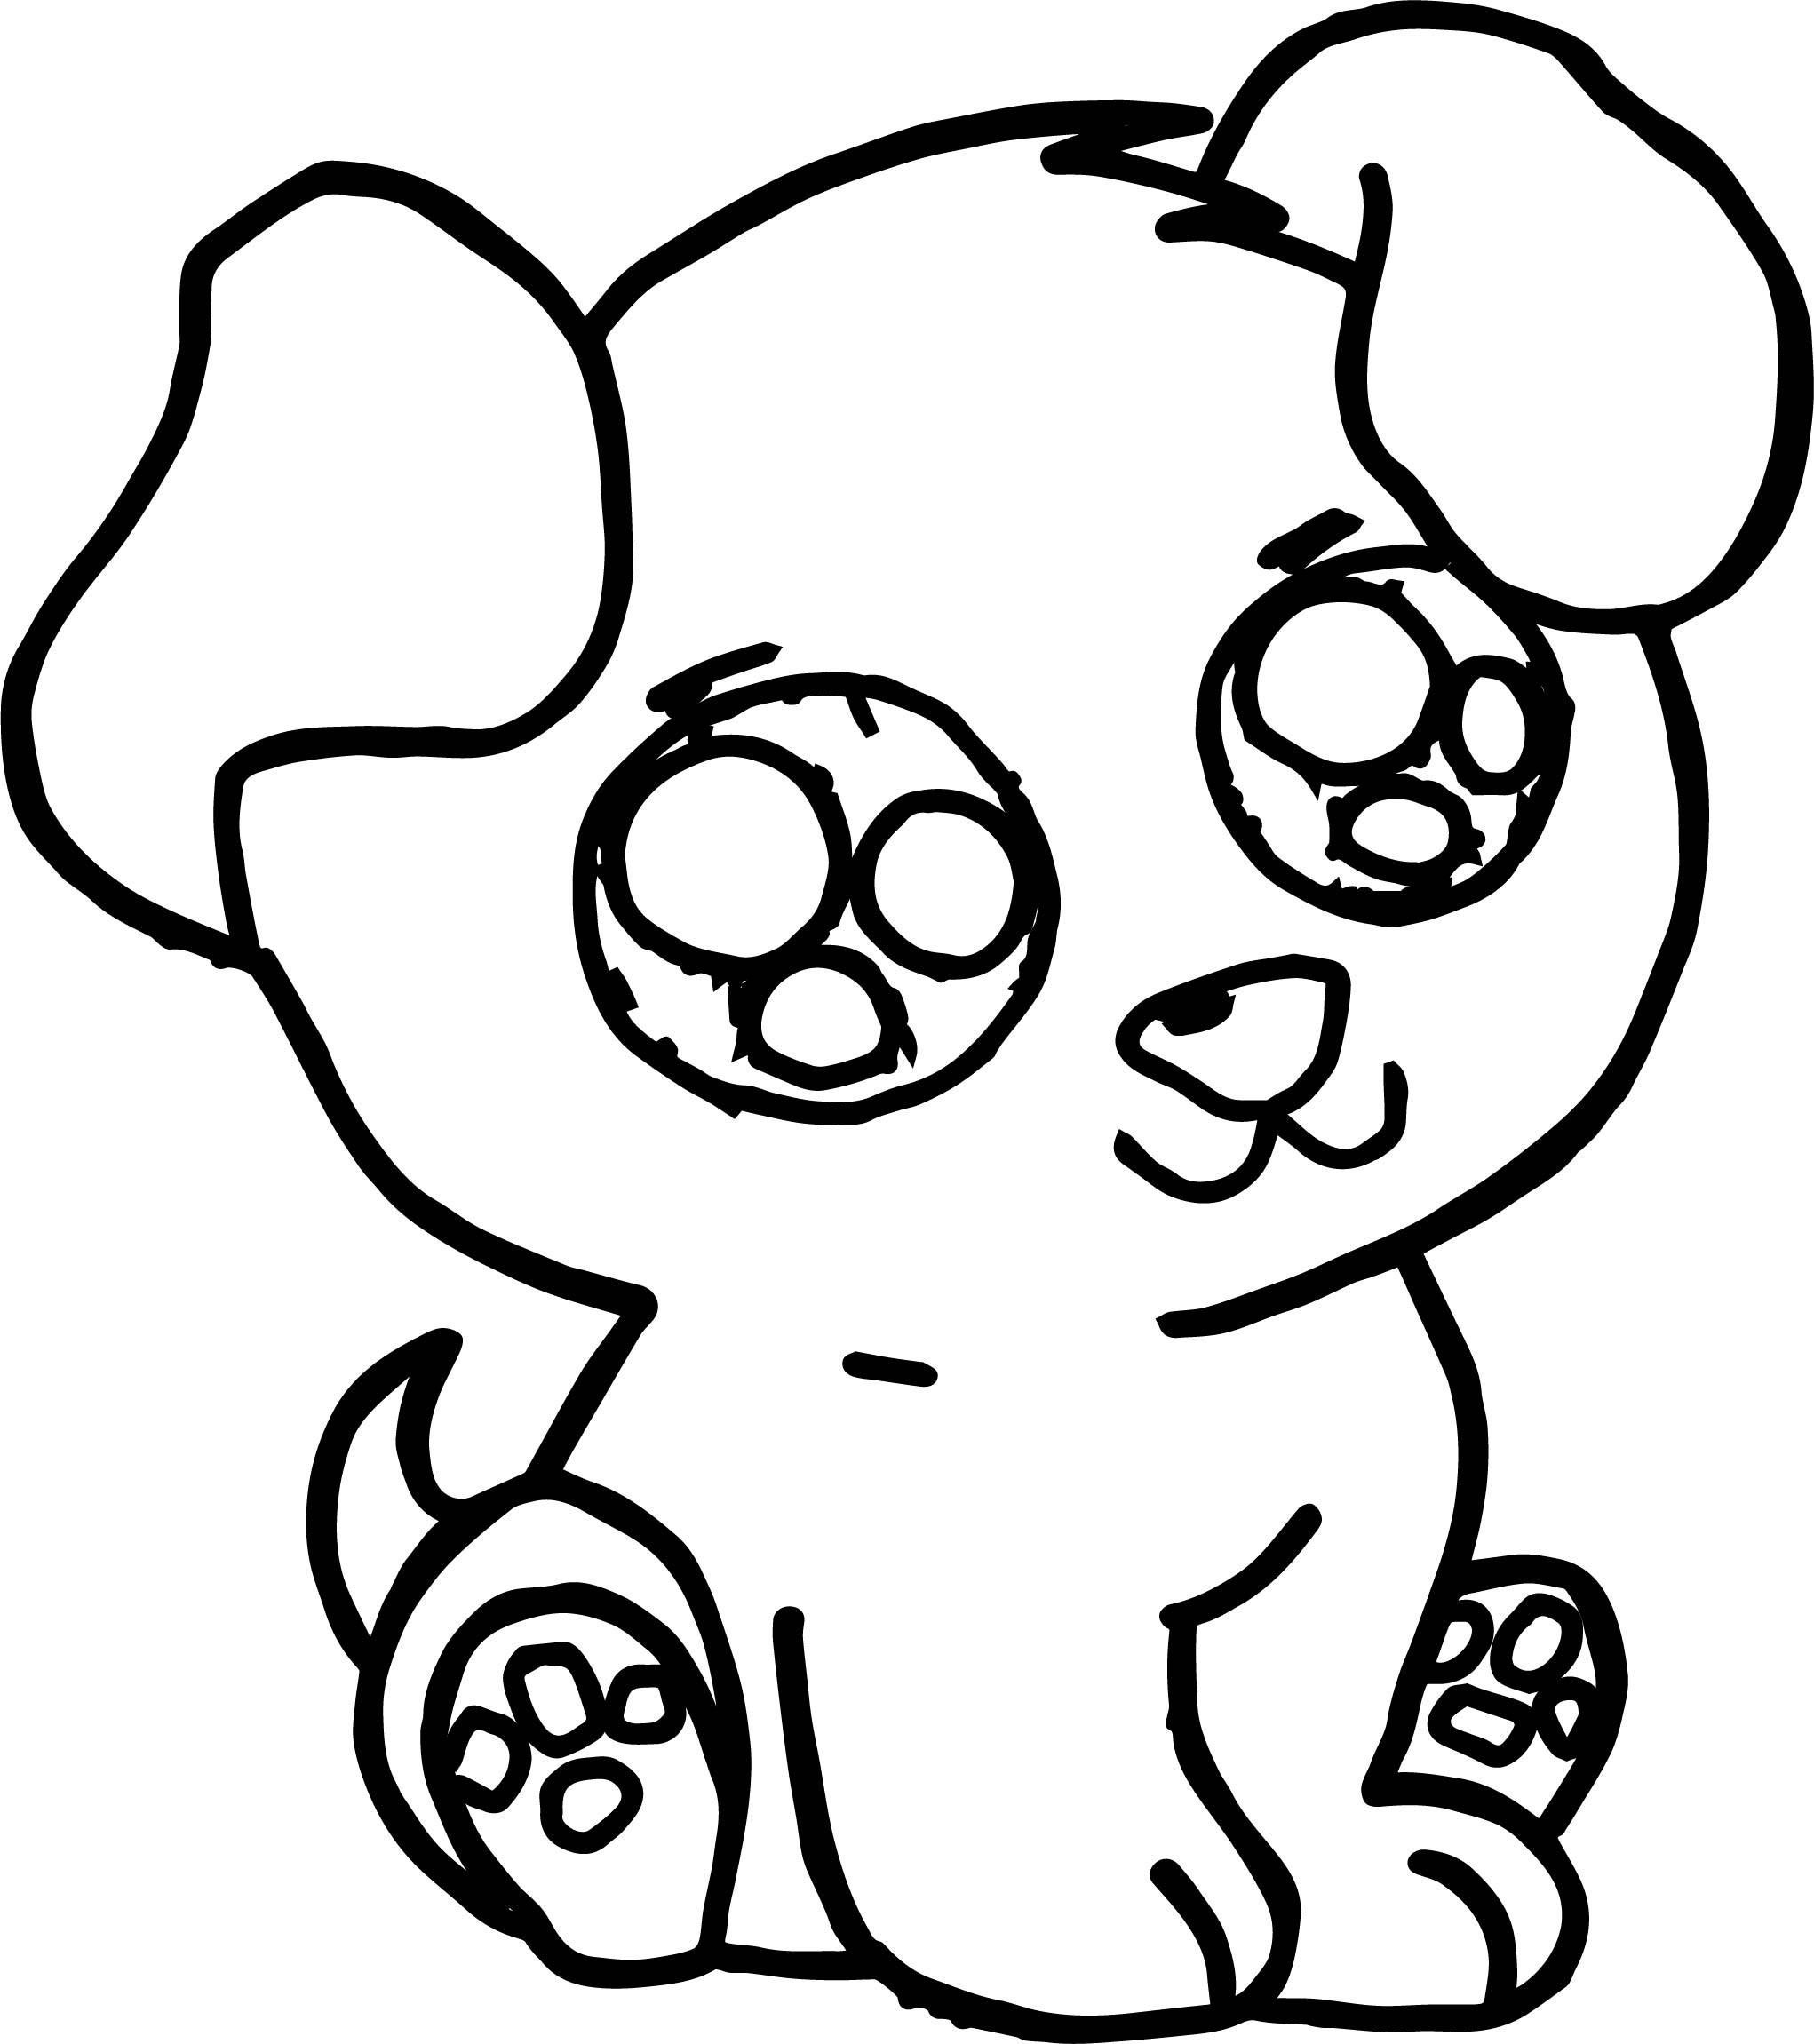 Boxer Puppy Coloring Pages From The Thousand Images On